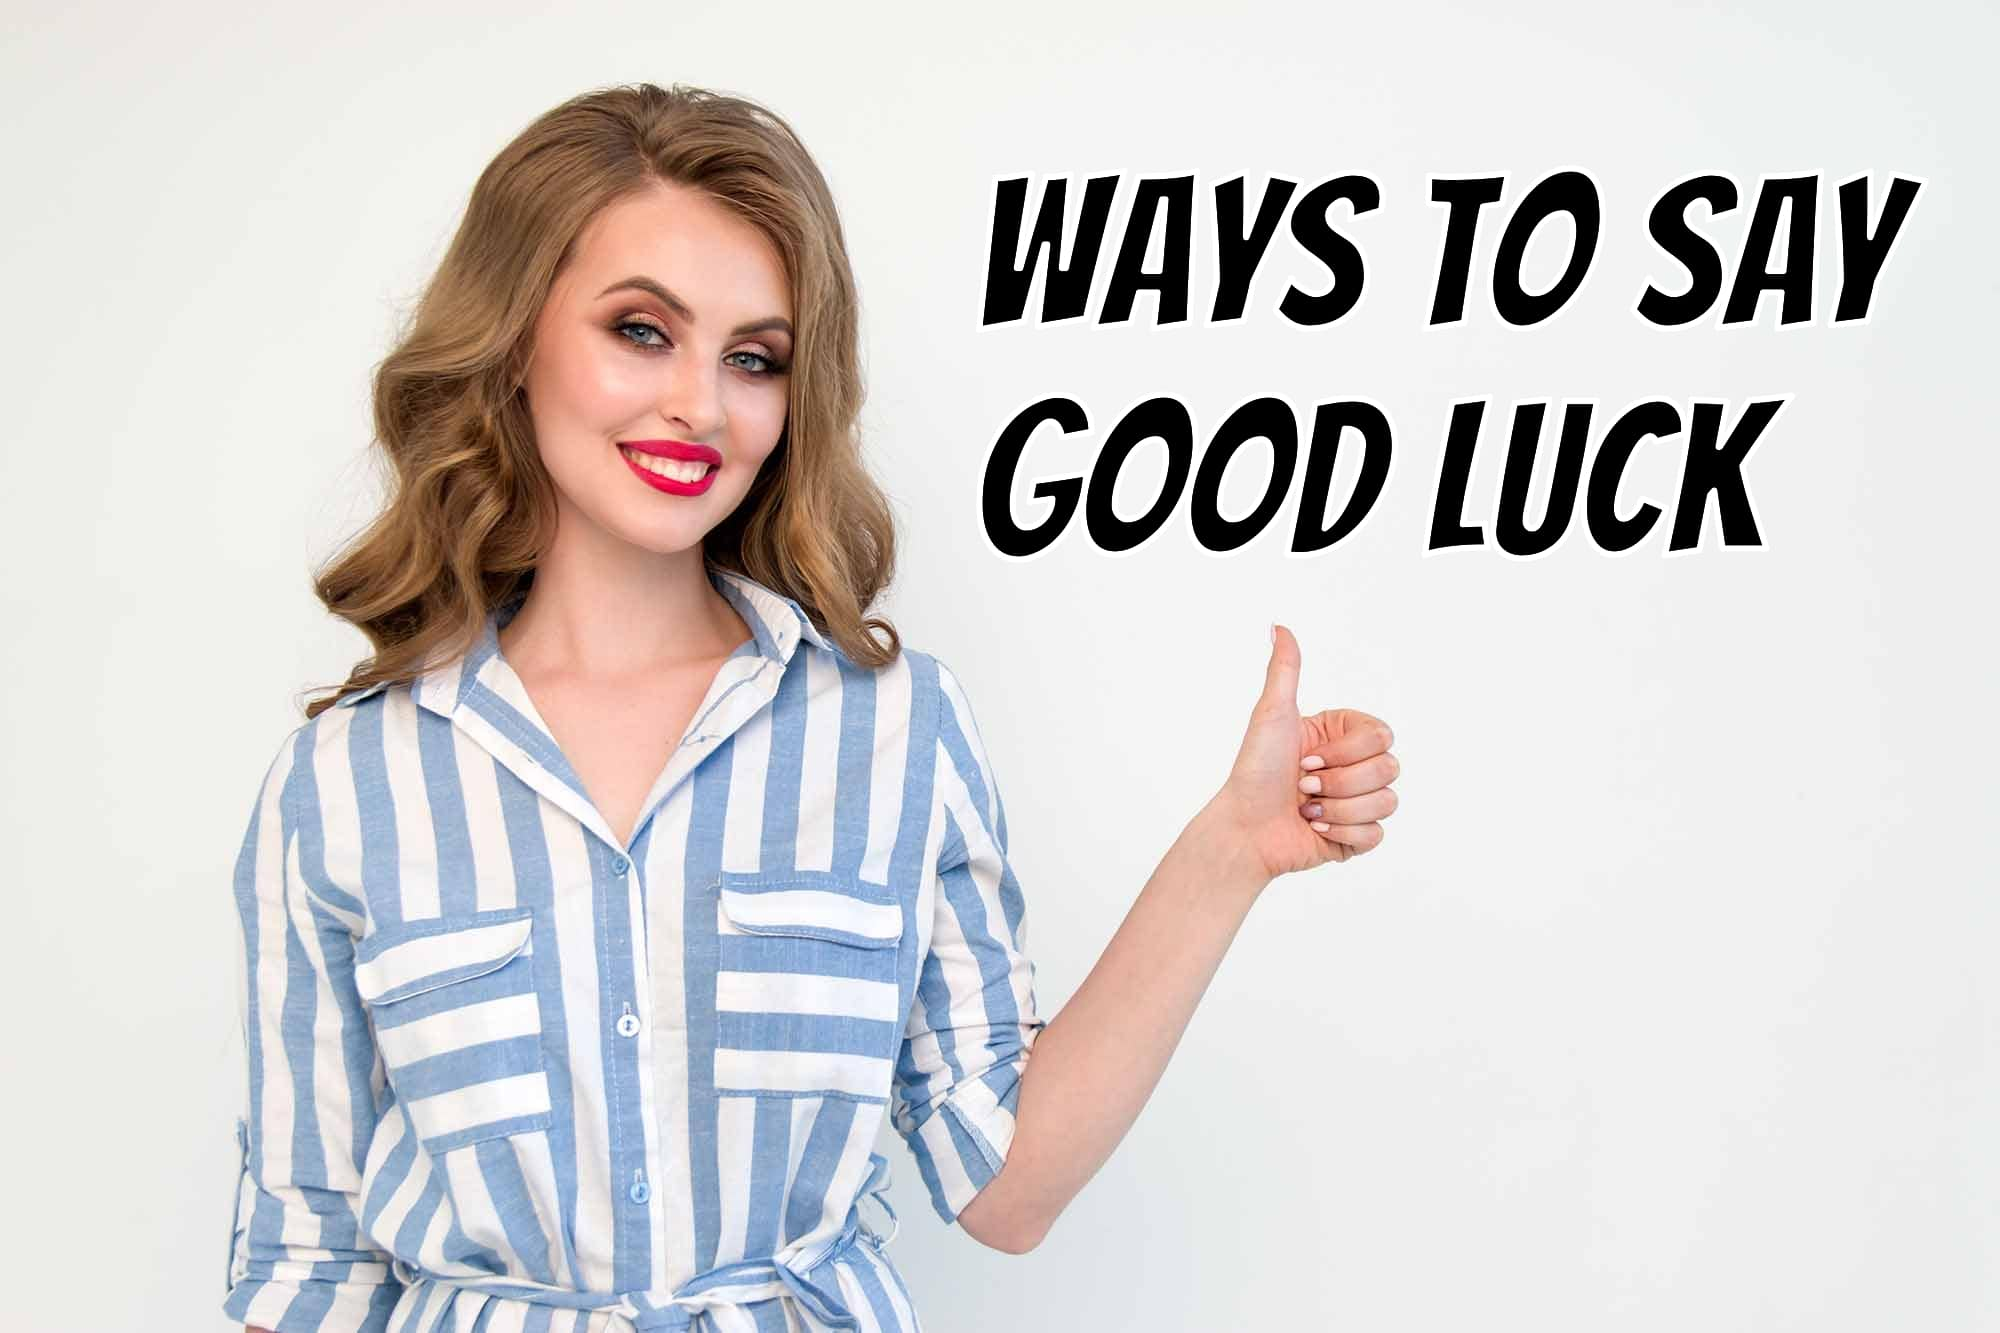 ways to say good luck